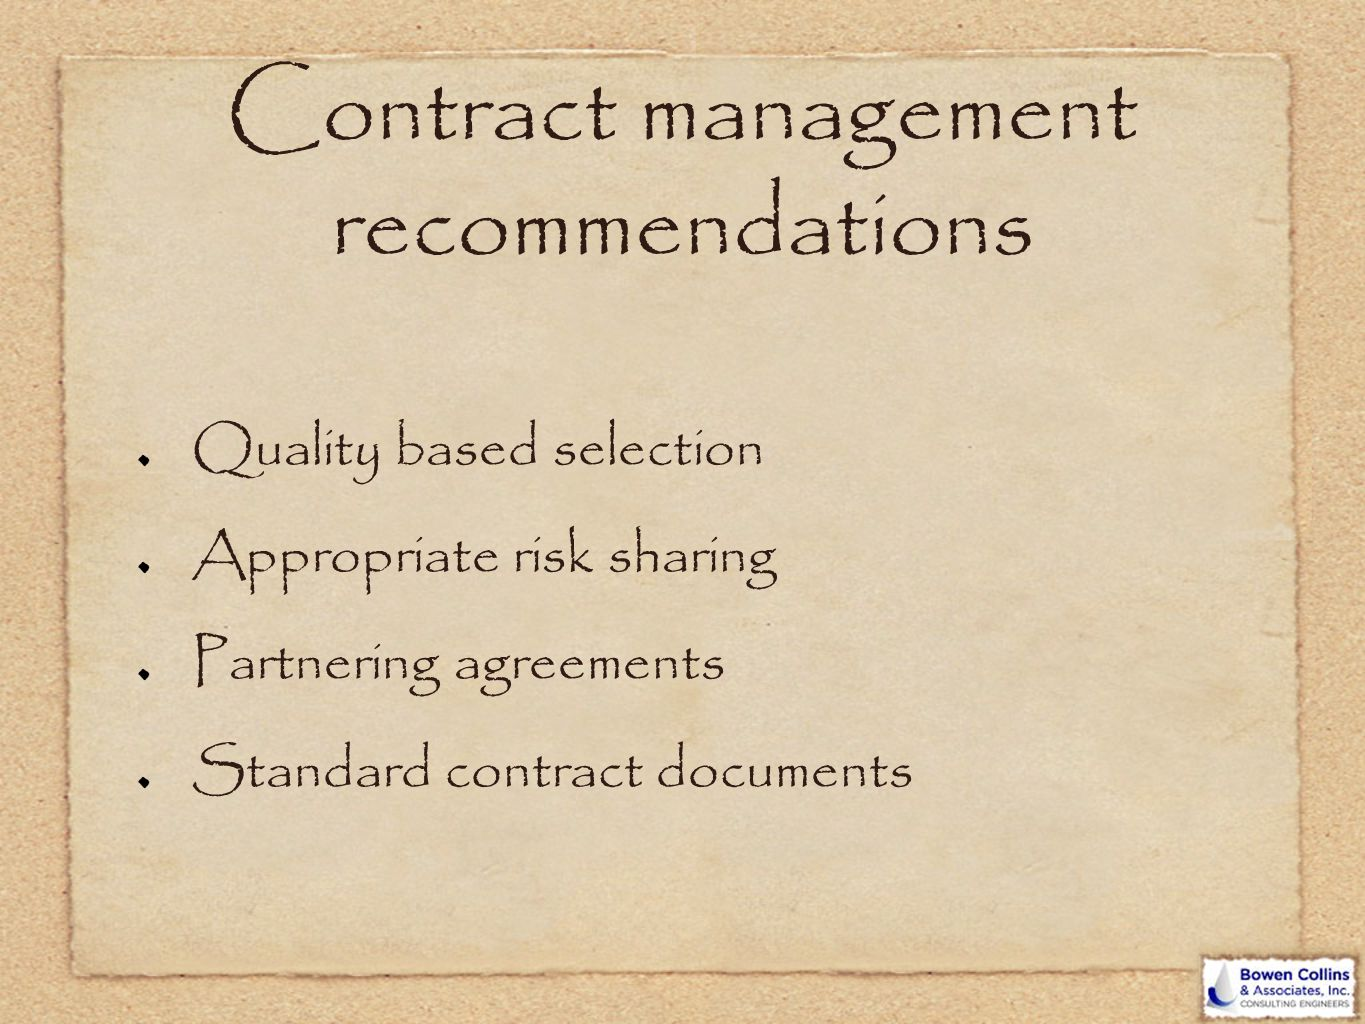 Contract management recommendations